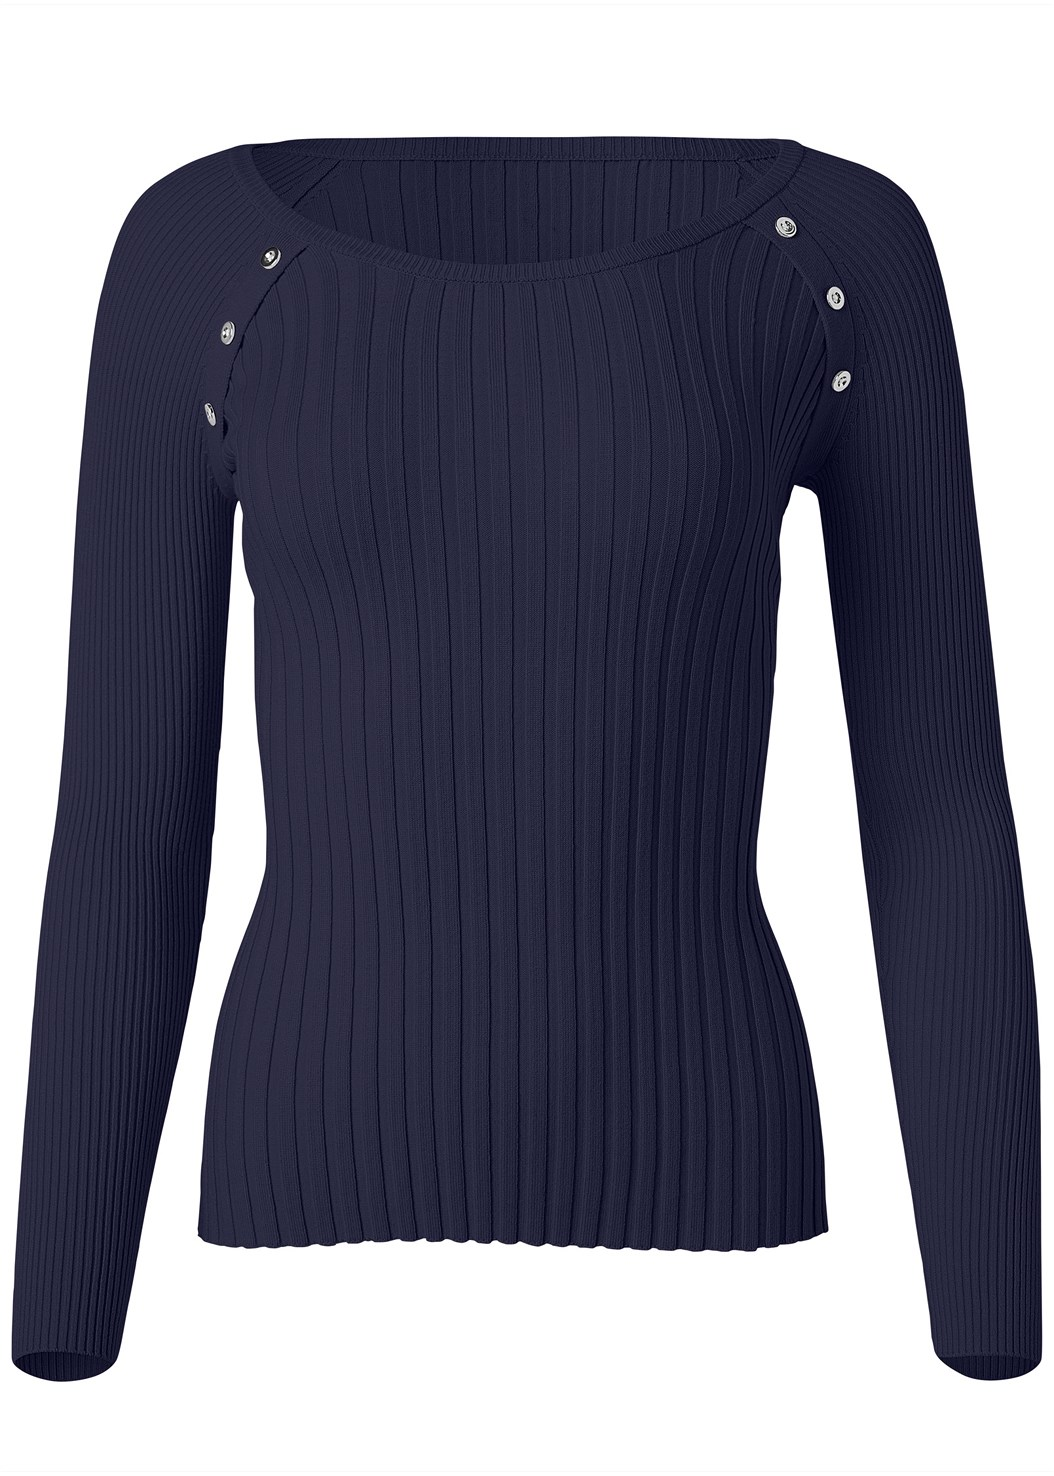 Ribbed Button Detail Sweater,Casual Bootcut Jeans